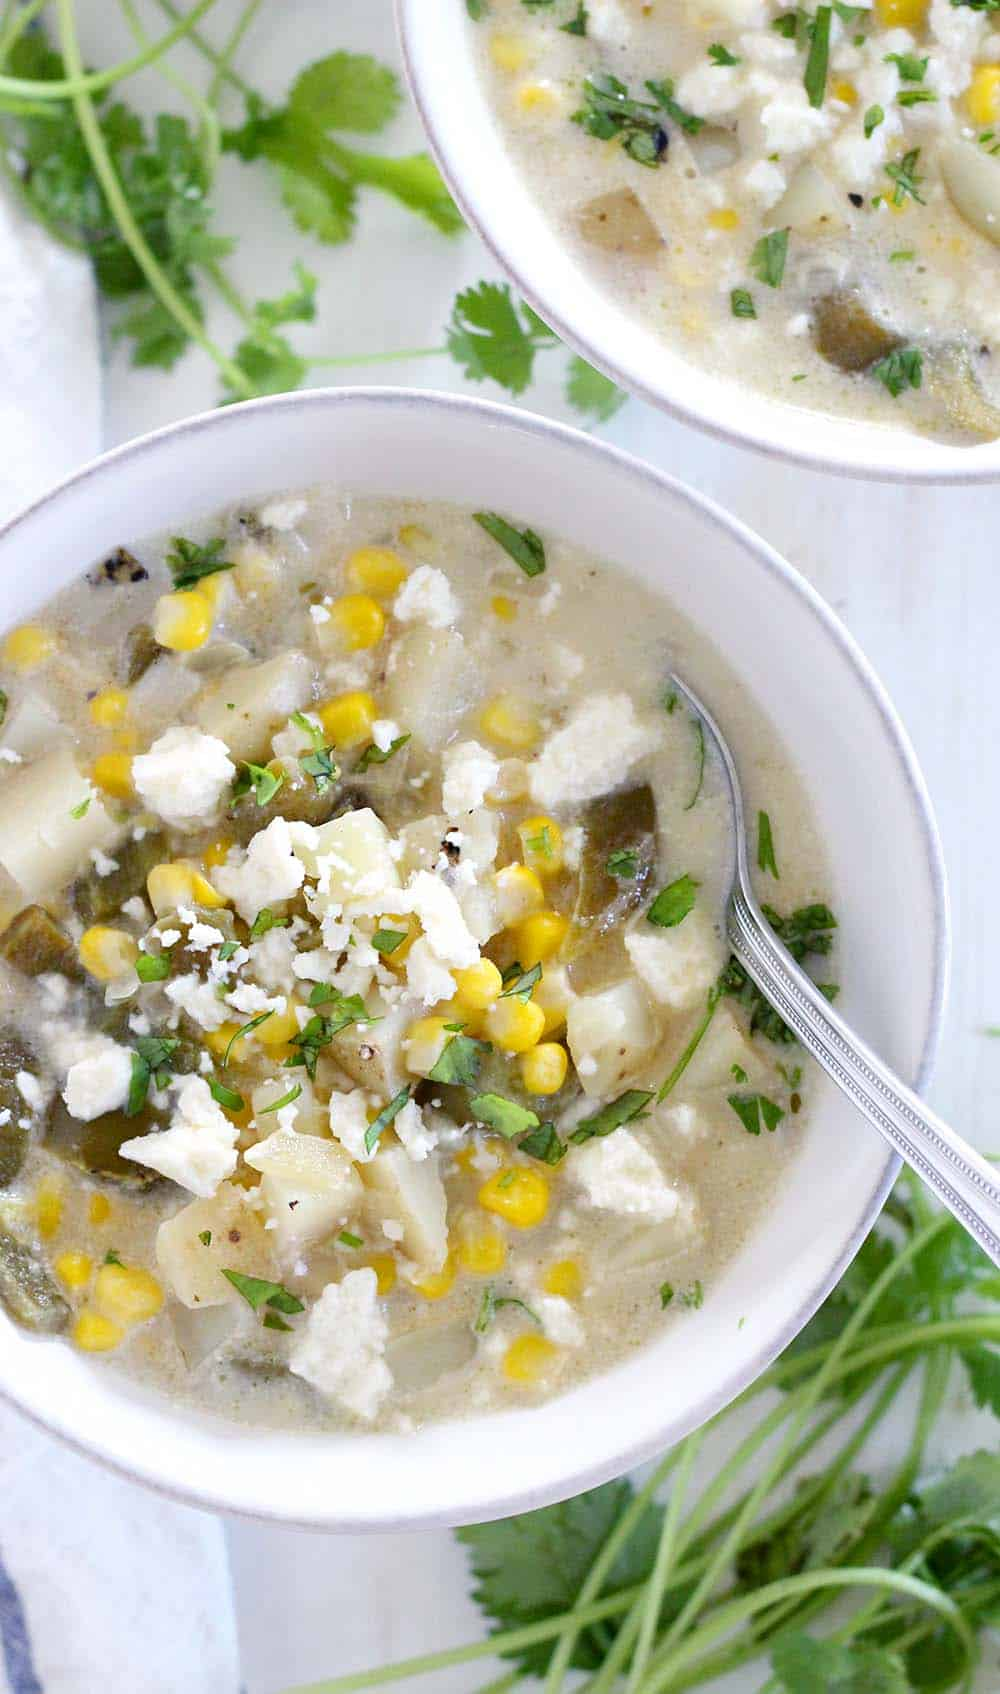 This mild green chile and corn chowder is thick and creamy, packed with sweet corn and mild fire-roasted green chiles. It's a gluten-free, vegetarian, hearty soup perfect for the end of summer!